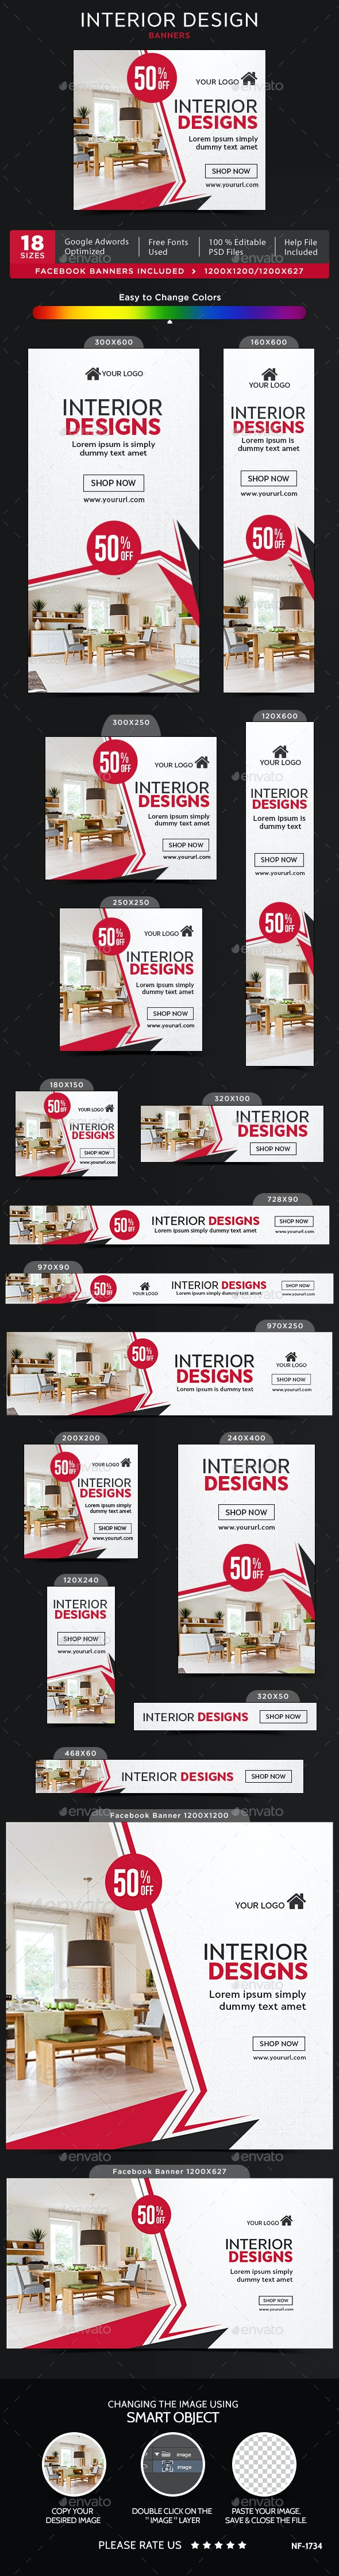 Interior Design Banners - Banners & Ads Web Elements